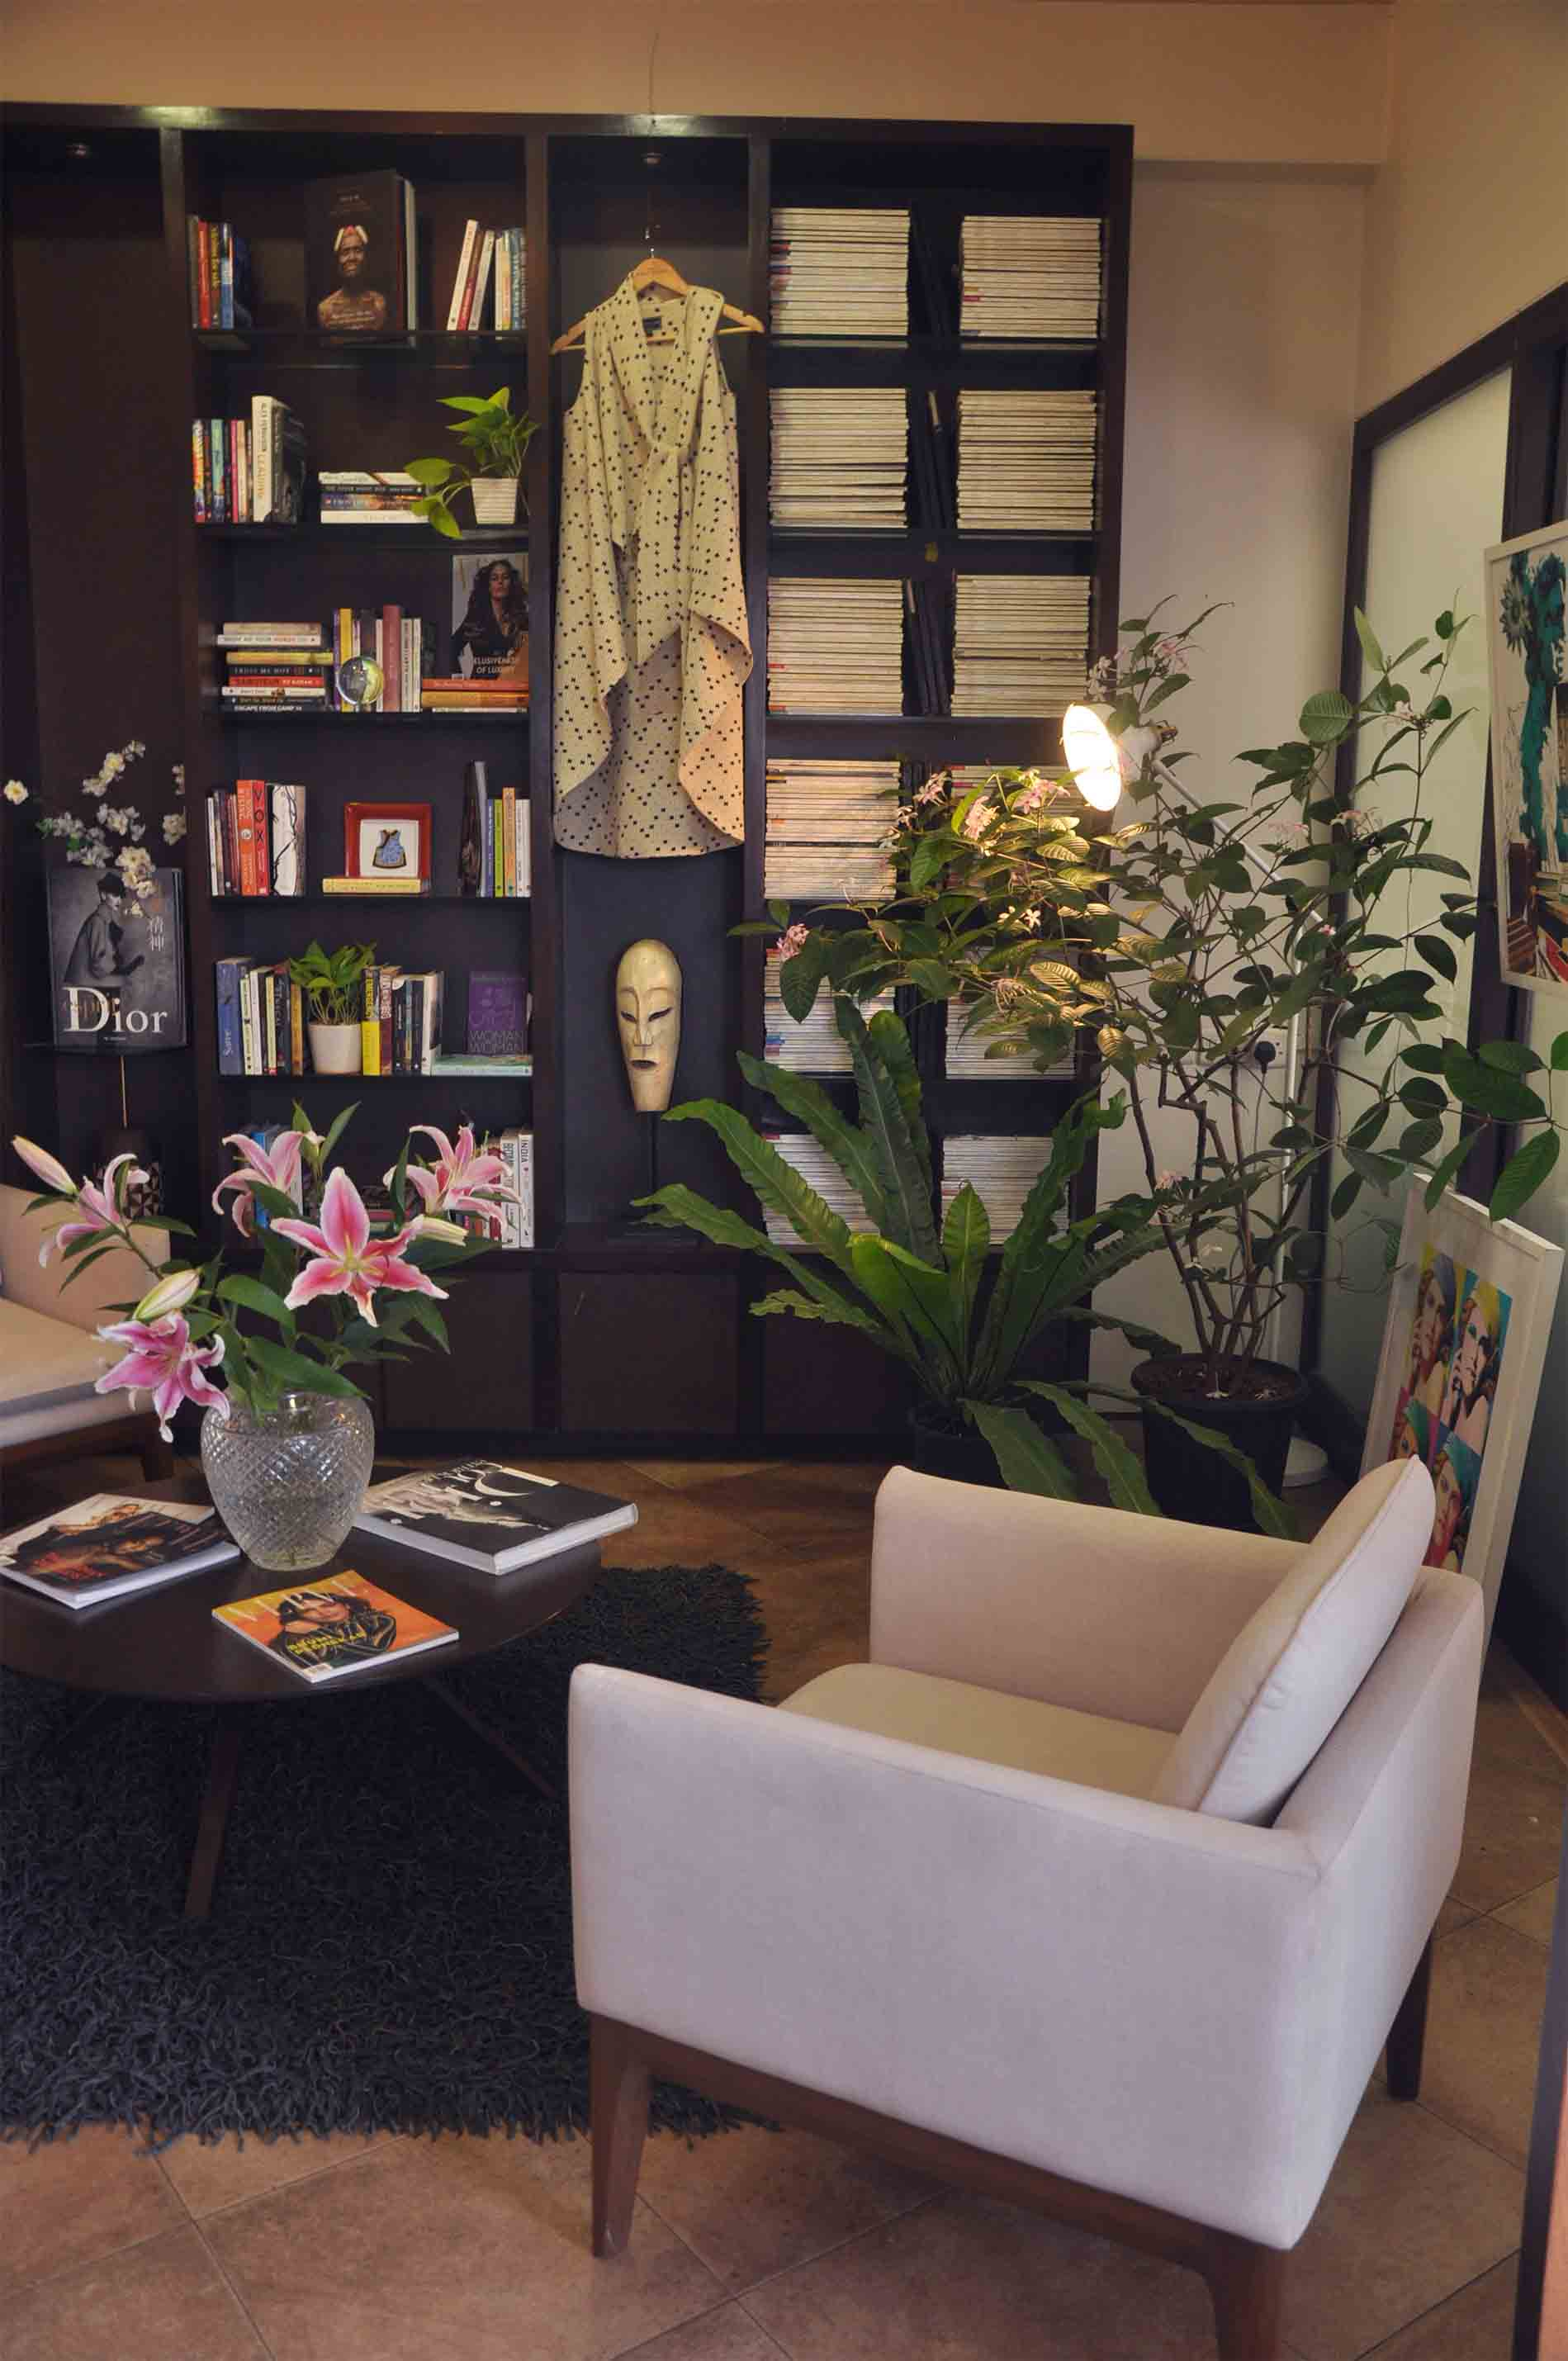 As a little treat furniture store red blue s iconic office in sobos colaba with a few key pieces of minimal furniture and